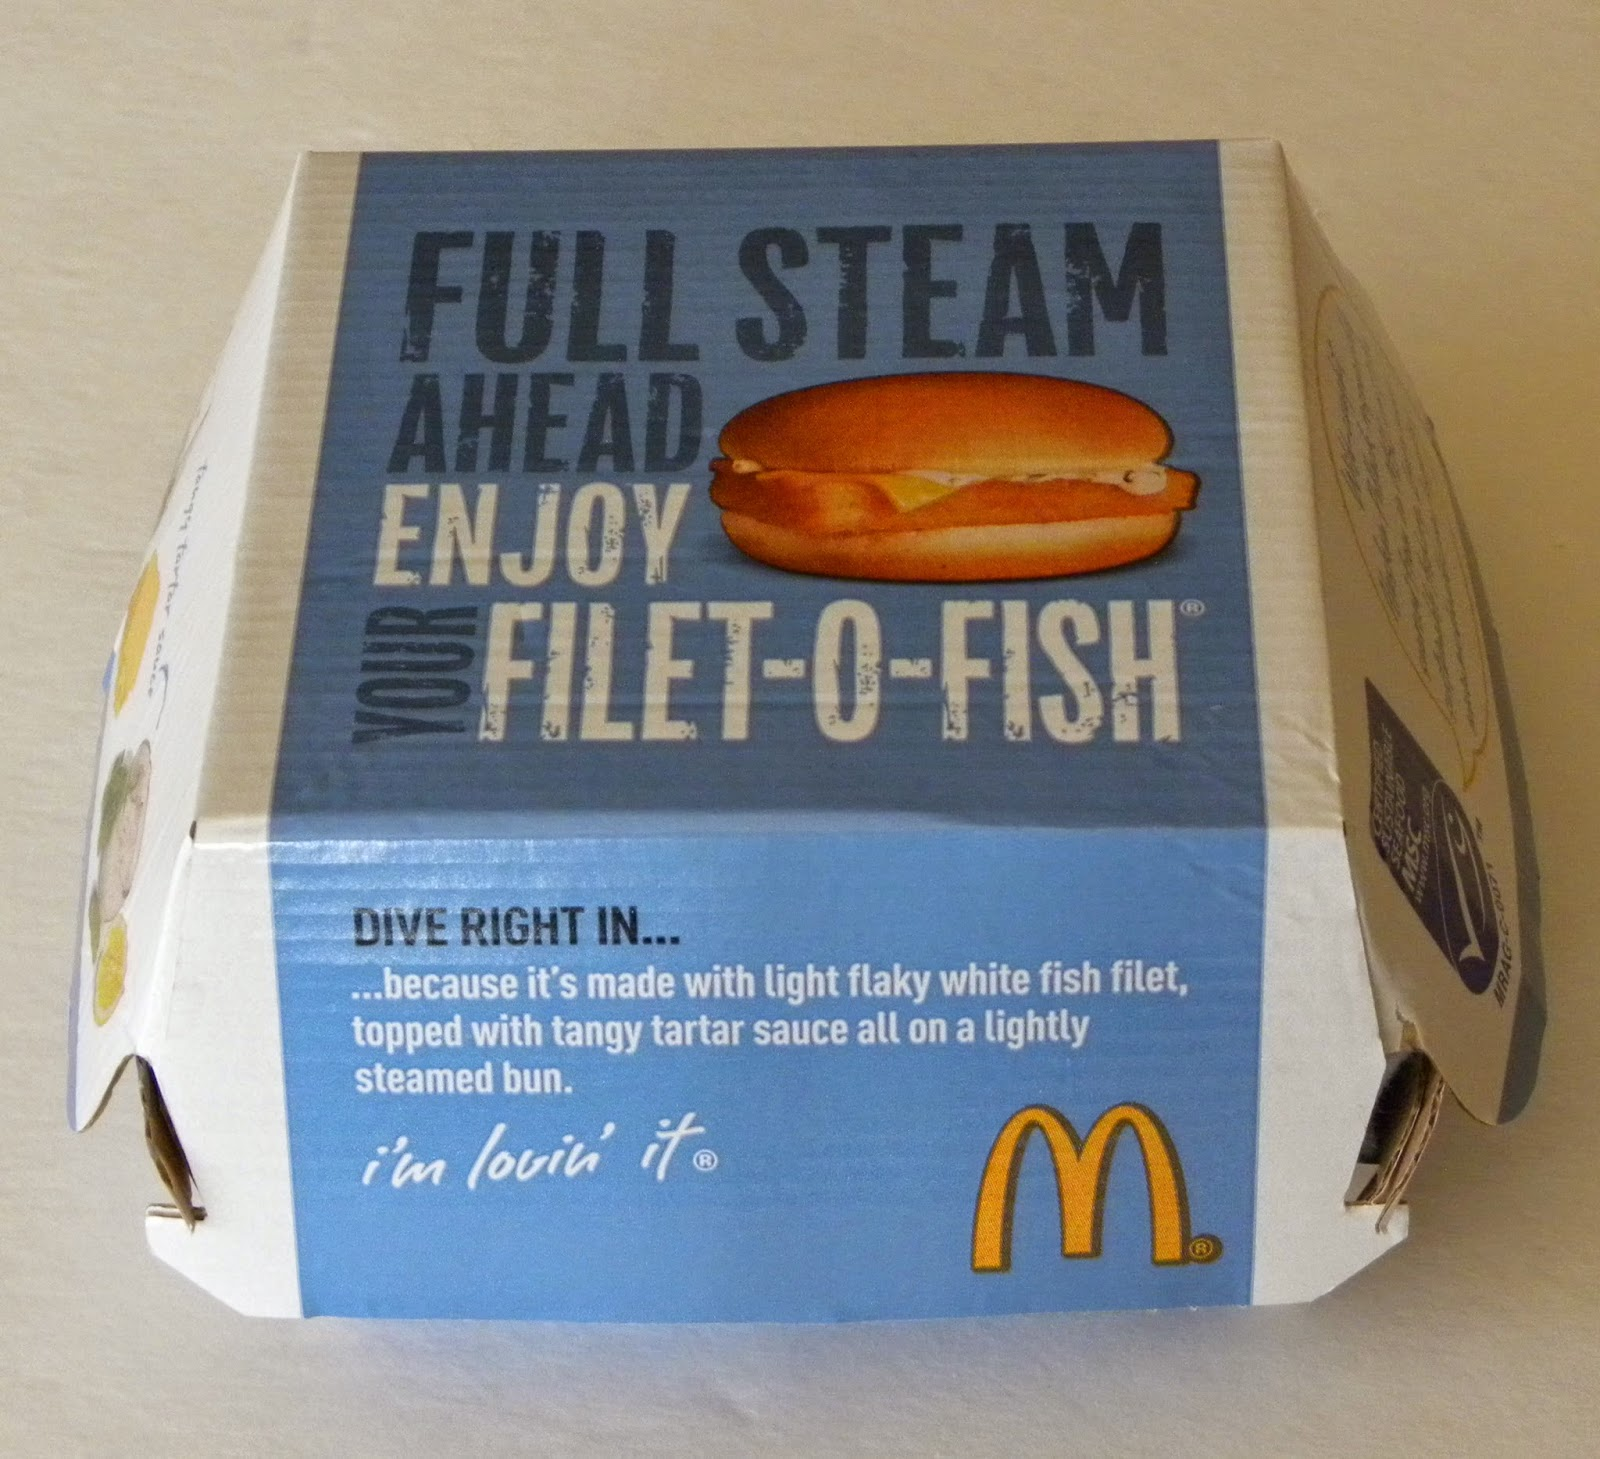 Knit and pearl full steam ahead for Filet o fish friday 2017